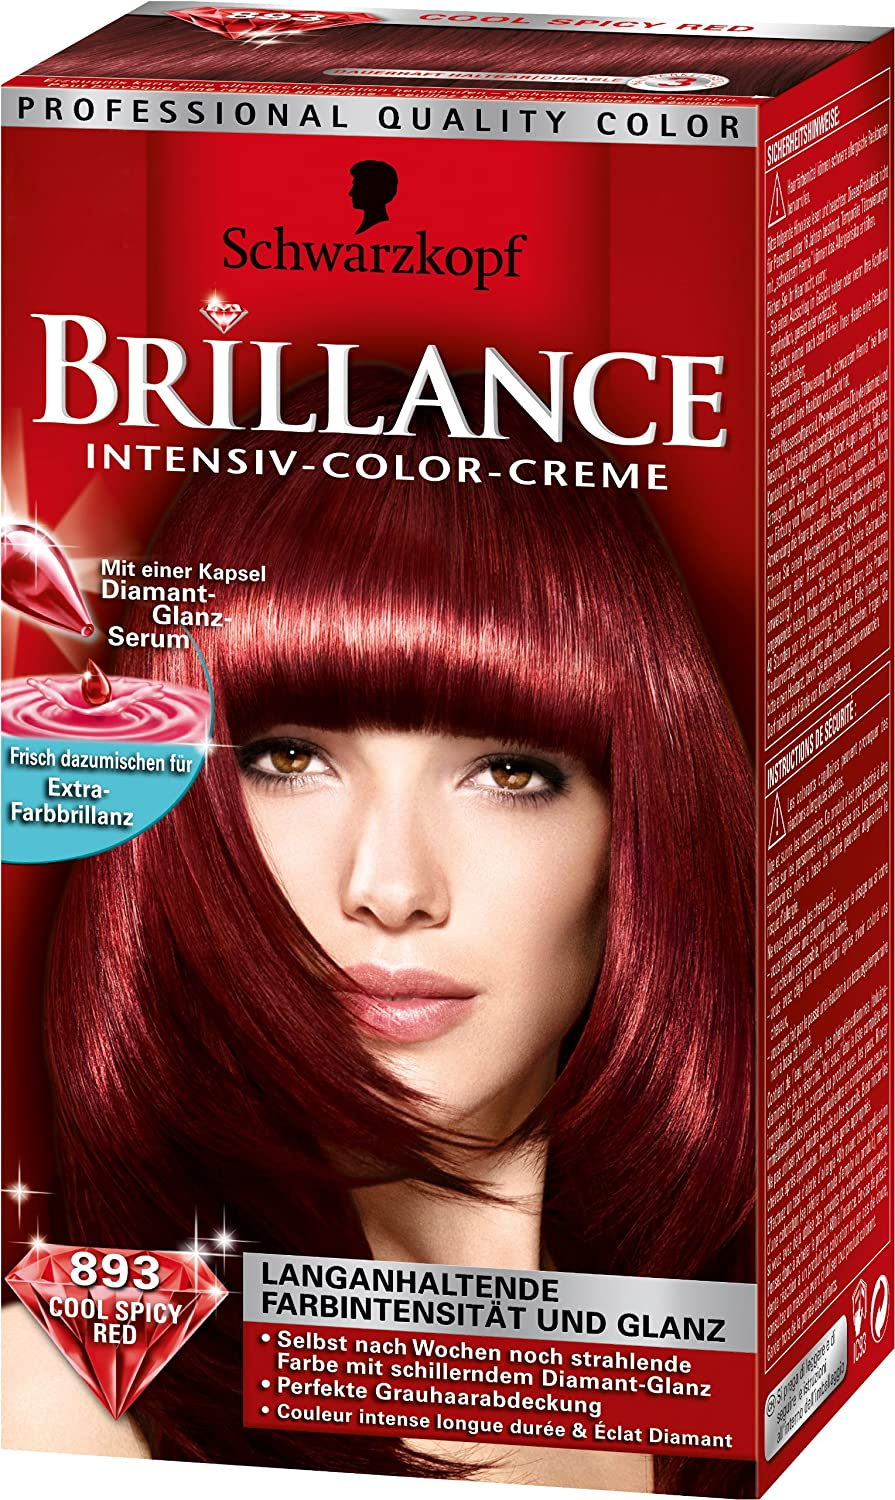 schwarzkopf brillance lot 2 couleur colorations serum cheveux 893 cool spicy red ebay. Black Bedroom Furniture Sets. Home Design Ideas